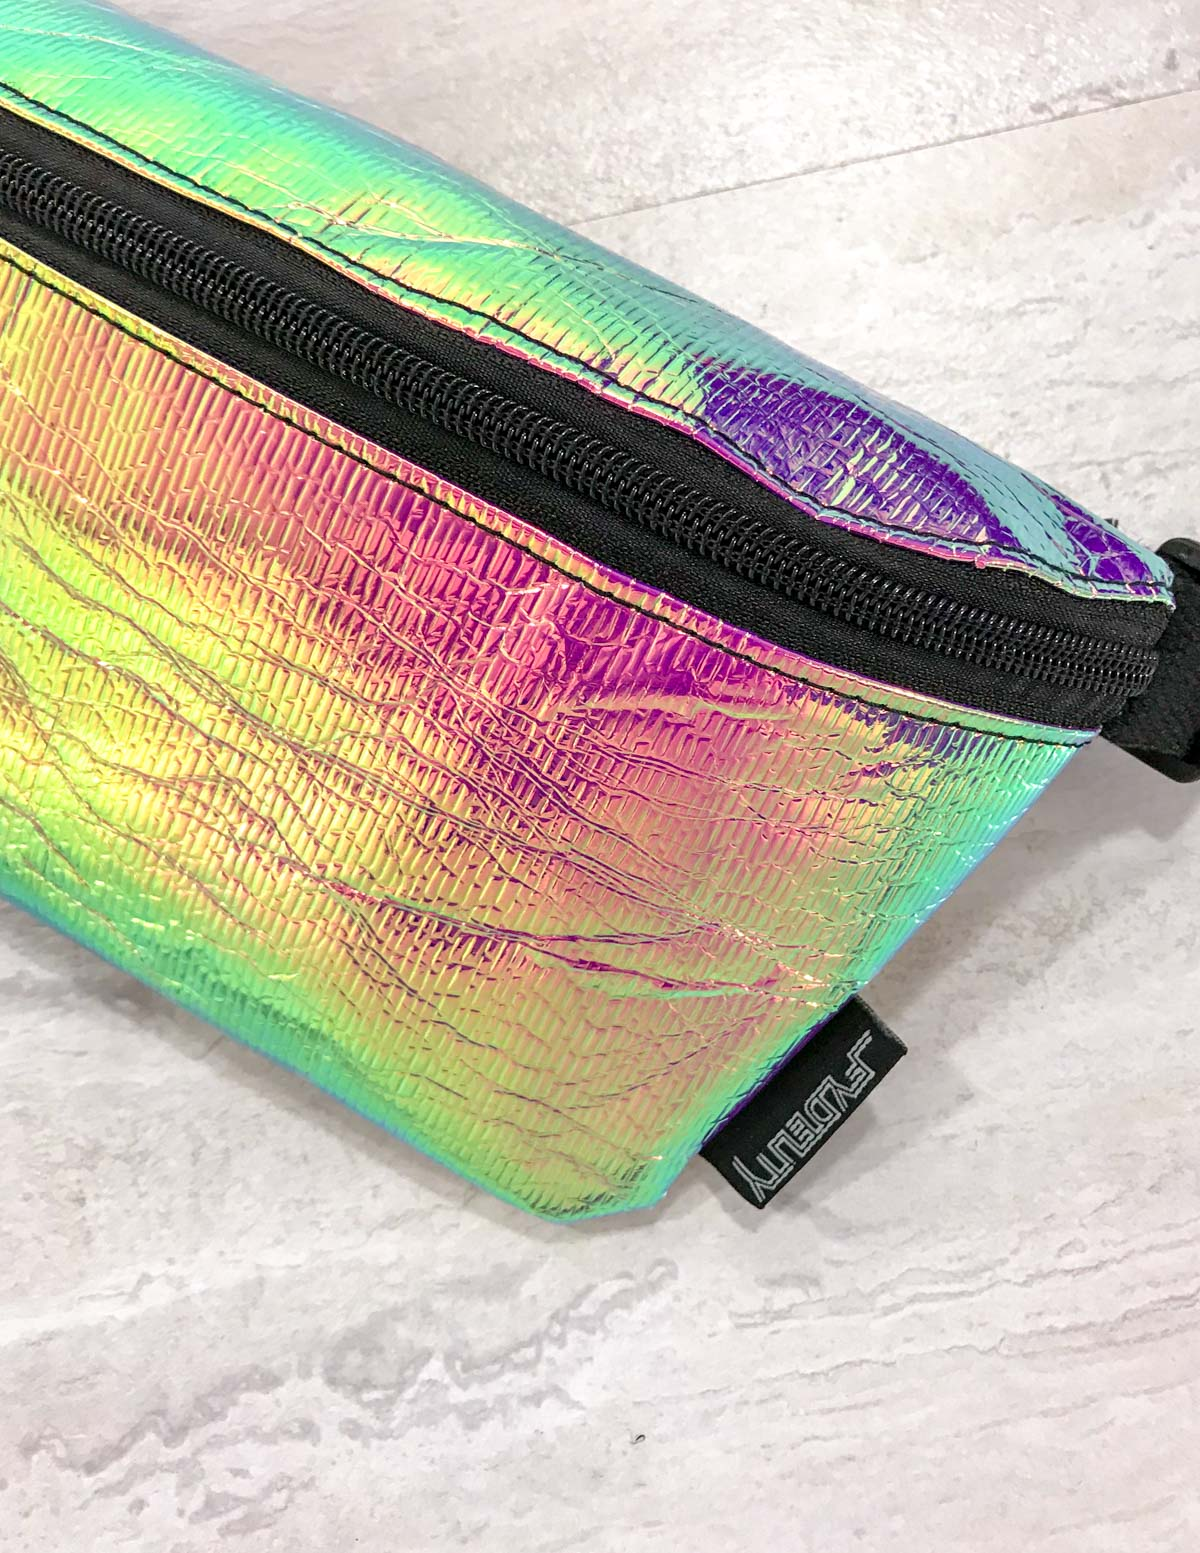 83229: Ultra-Slim Fanny Pack: INTERPLANETARY Aura Spectral